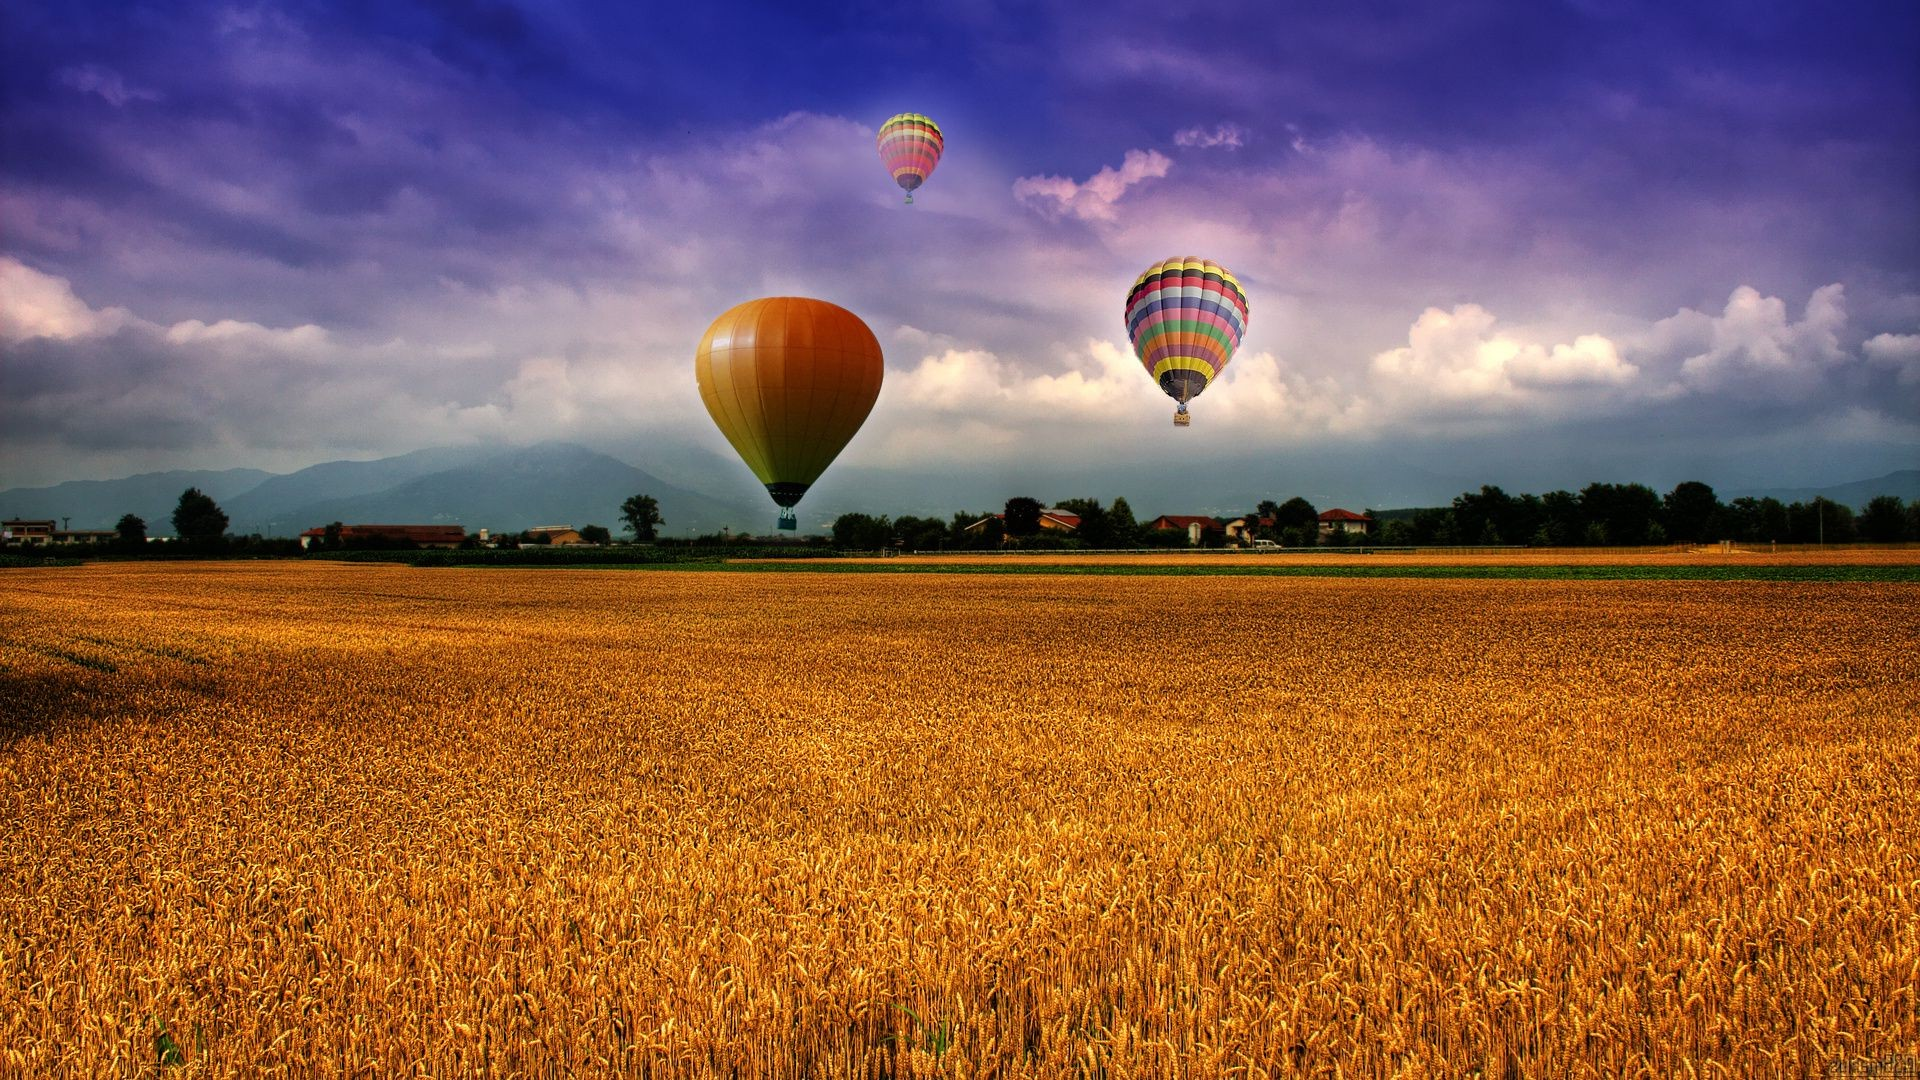 Flight of balloons over wheat field